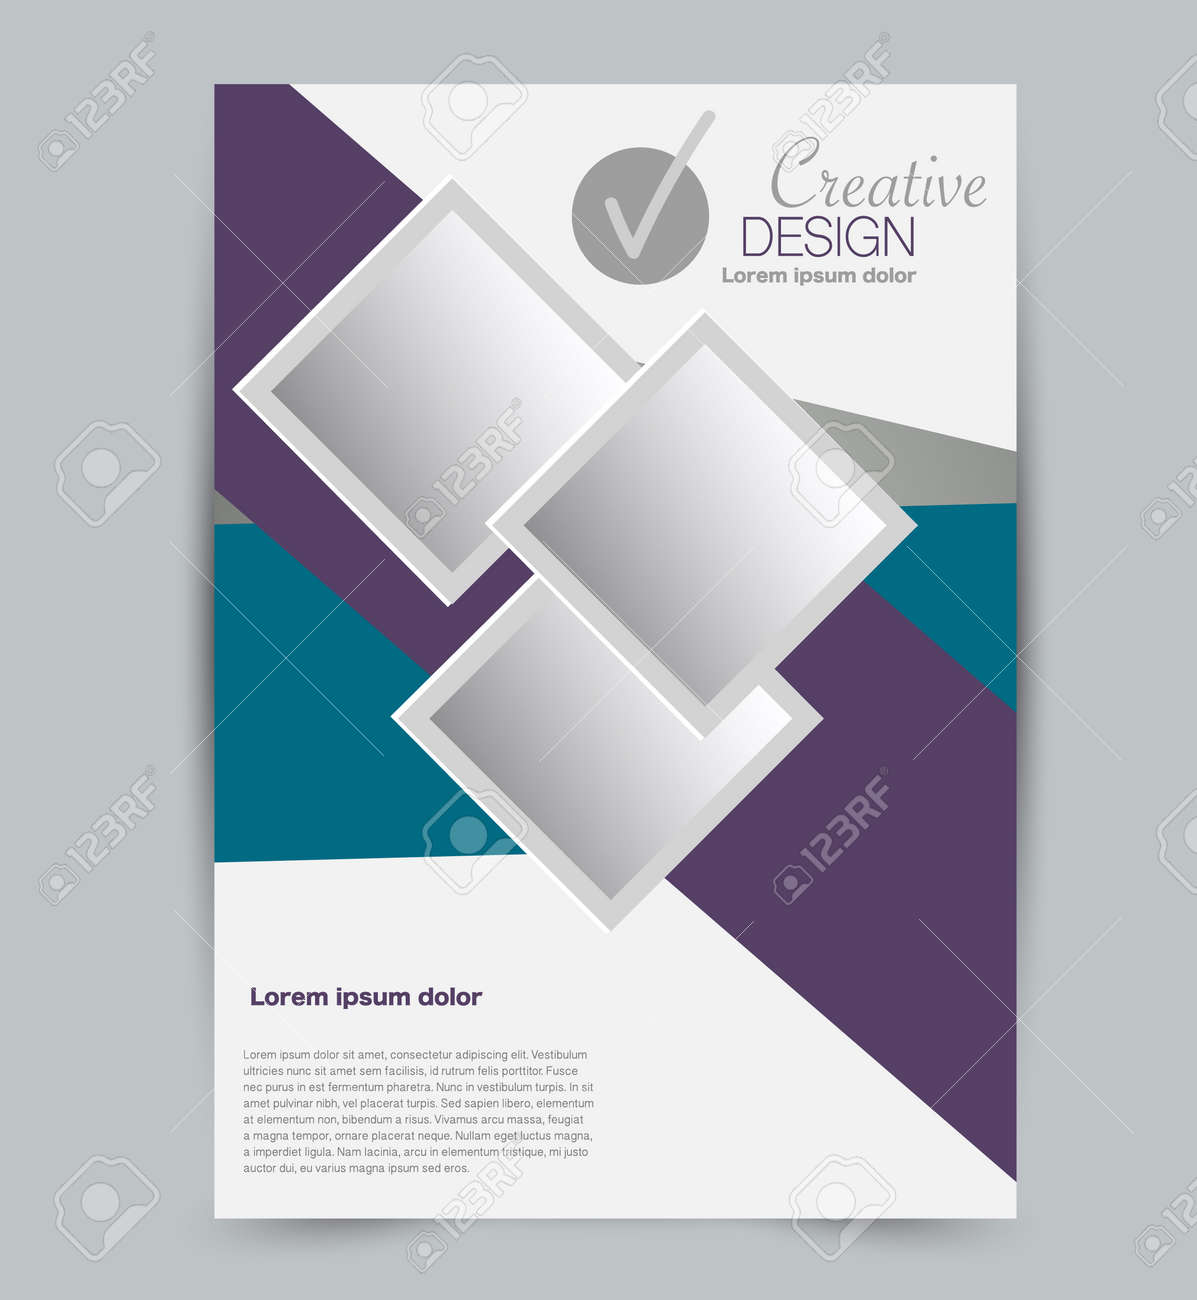 Flyer template. Design for a business, education, advertisement brochure, poster or pamphlet. Vector illustration. Blue and purple color. - 126874894